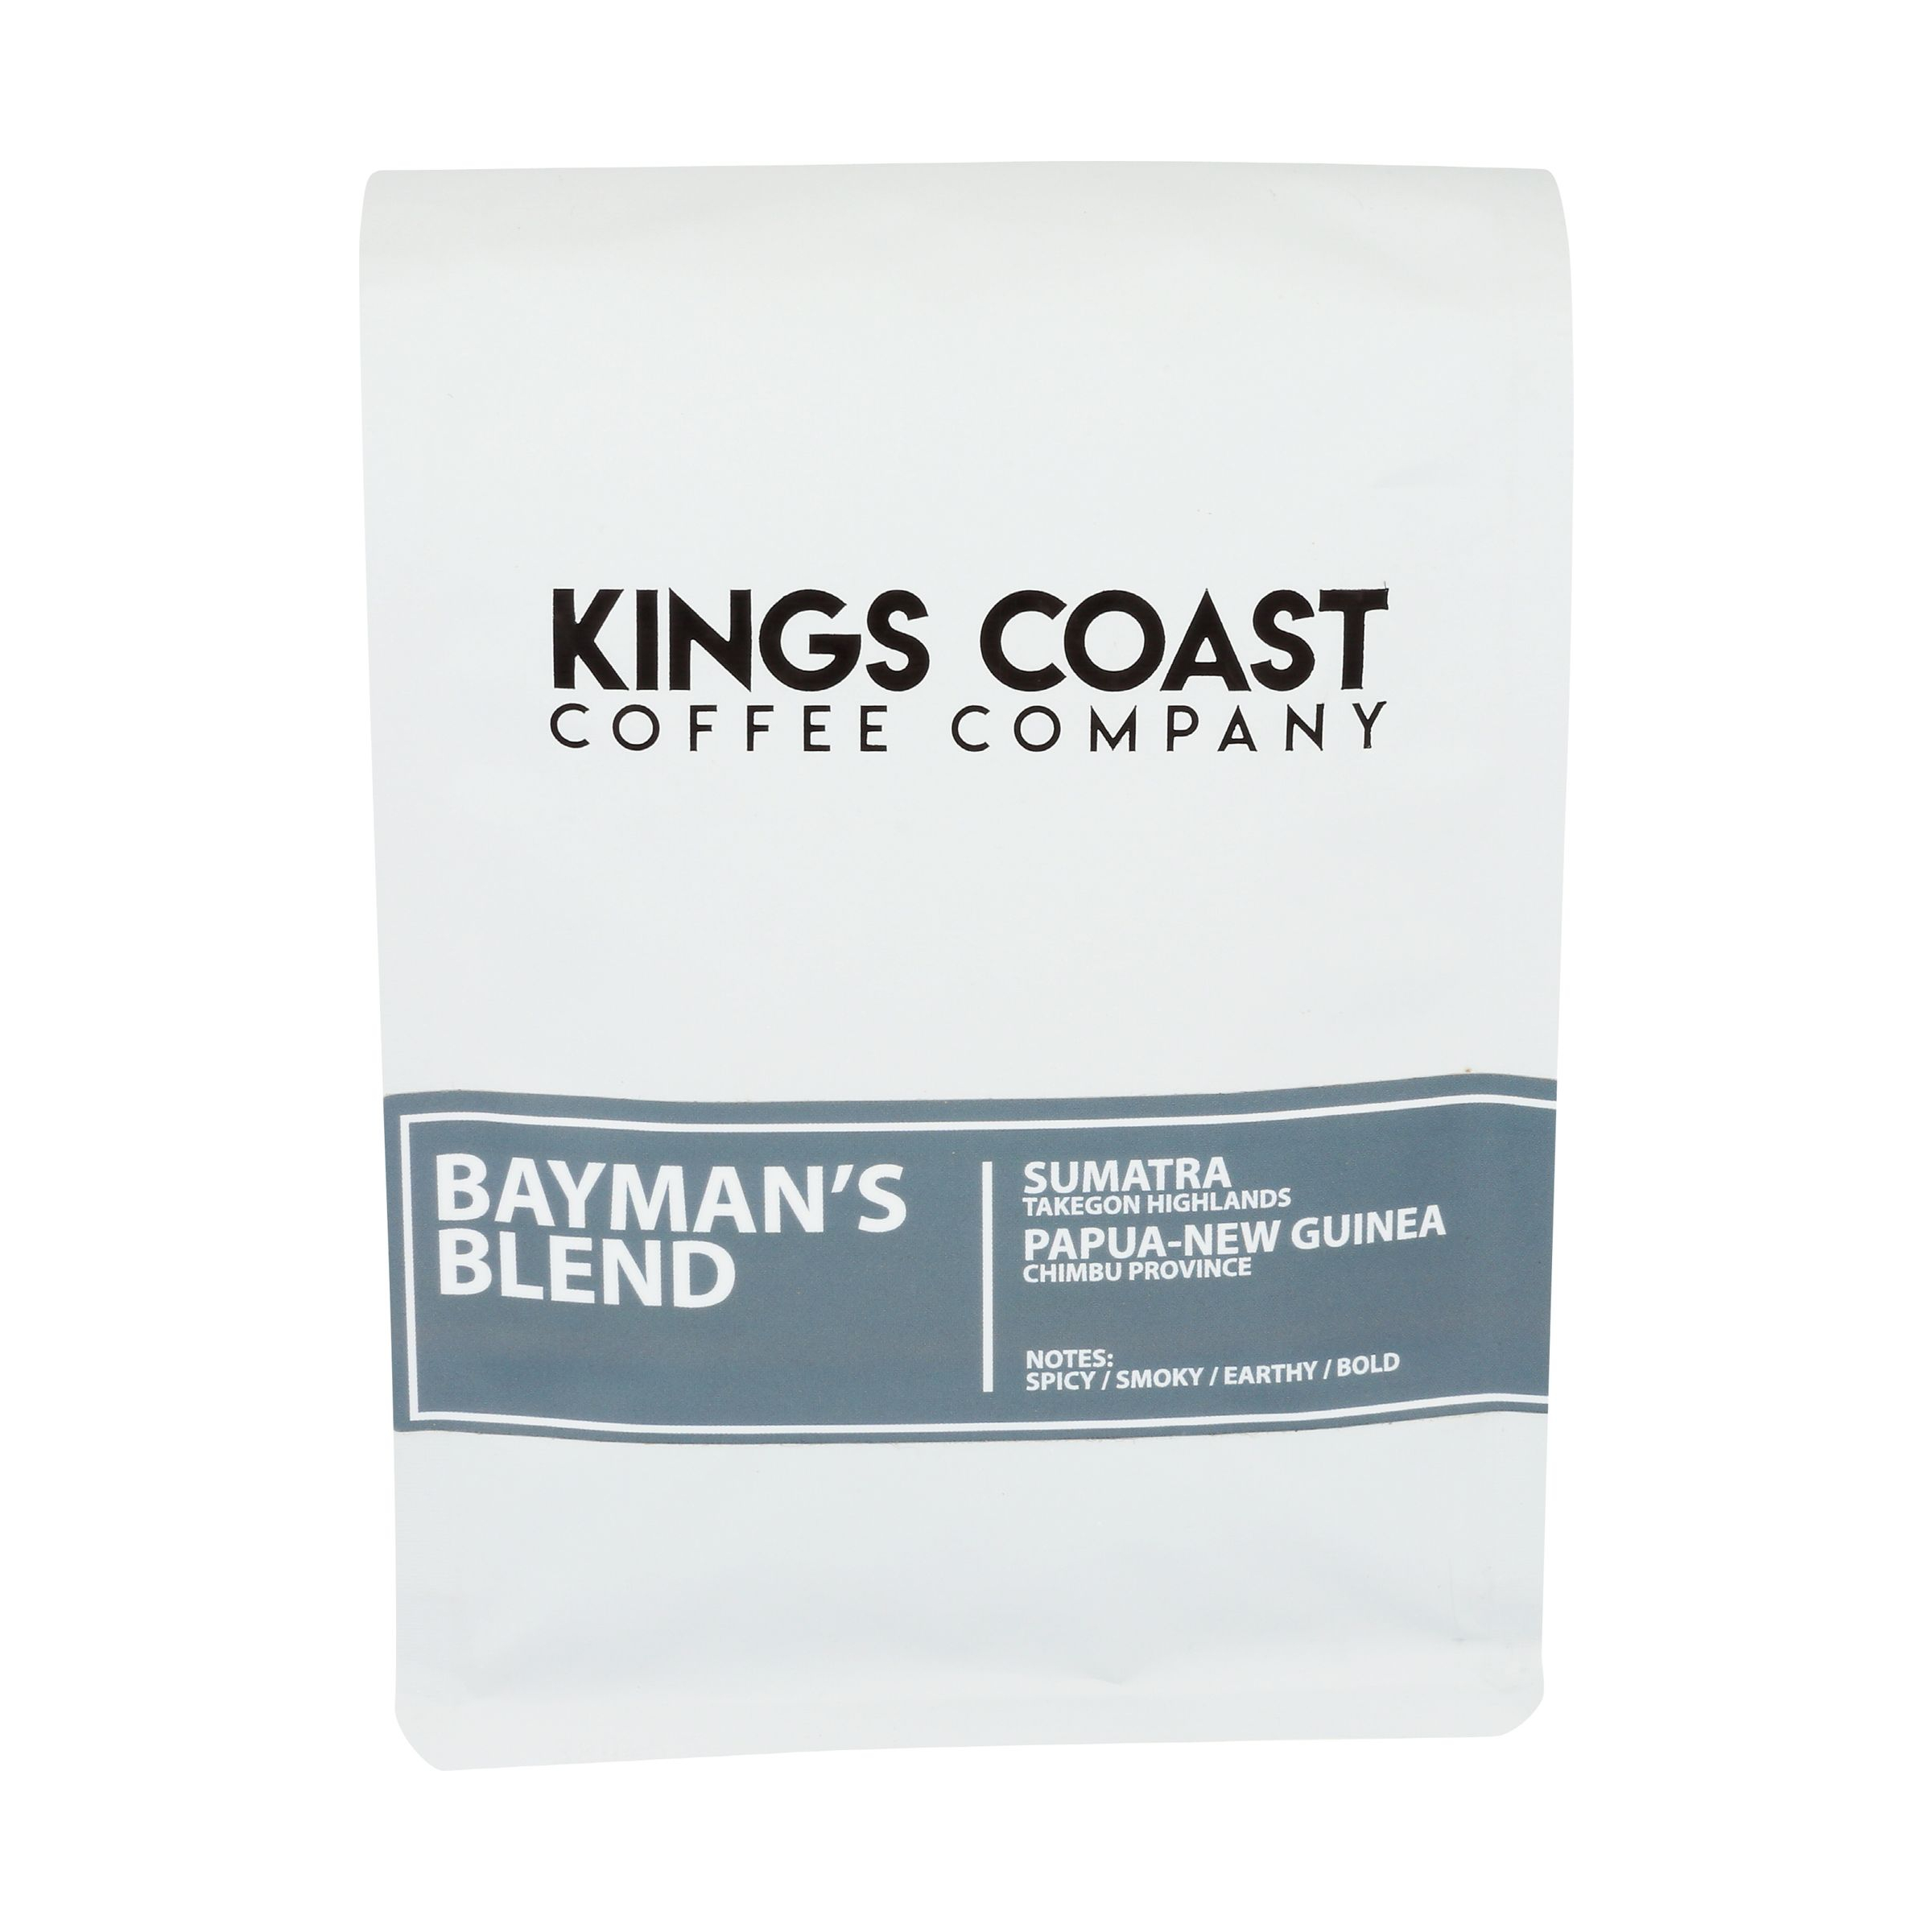 Baymans Blend Blend Of Papua New Guinea And Sumatra Coffee